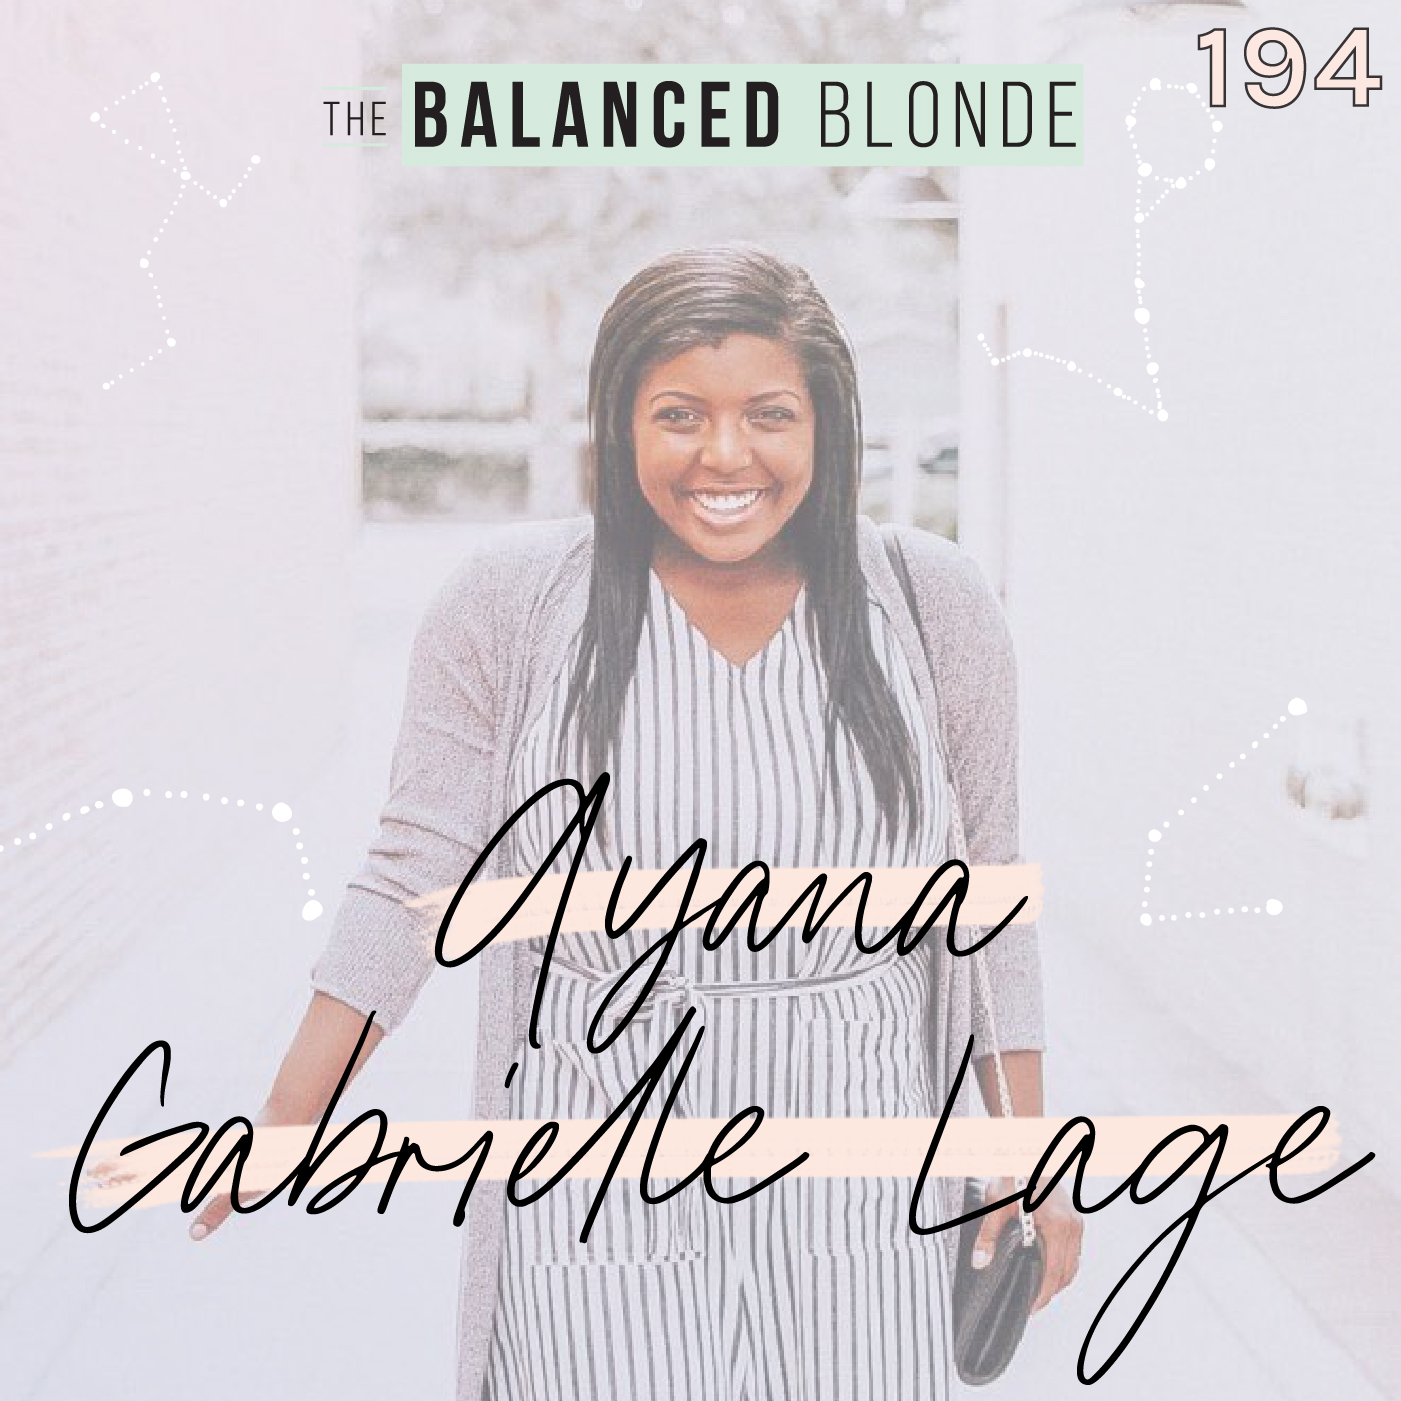 Ep 194 ft. Ayana Gabrielle Lage: Fashion Blogging, Pregnancy, How to Stop Virtue Signaling, & How to Show Up for Black Lives Matter